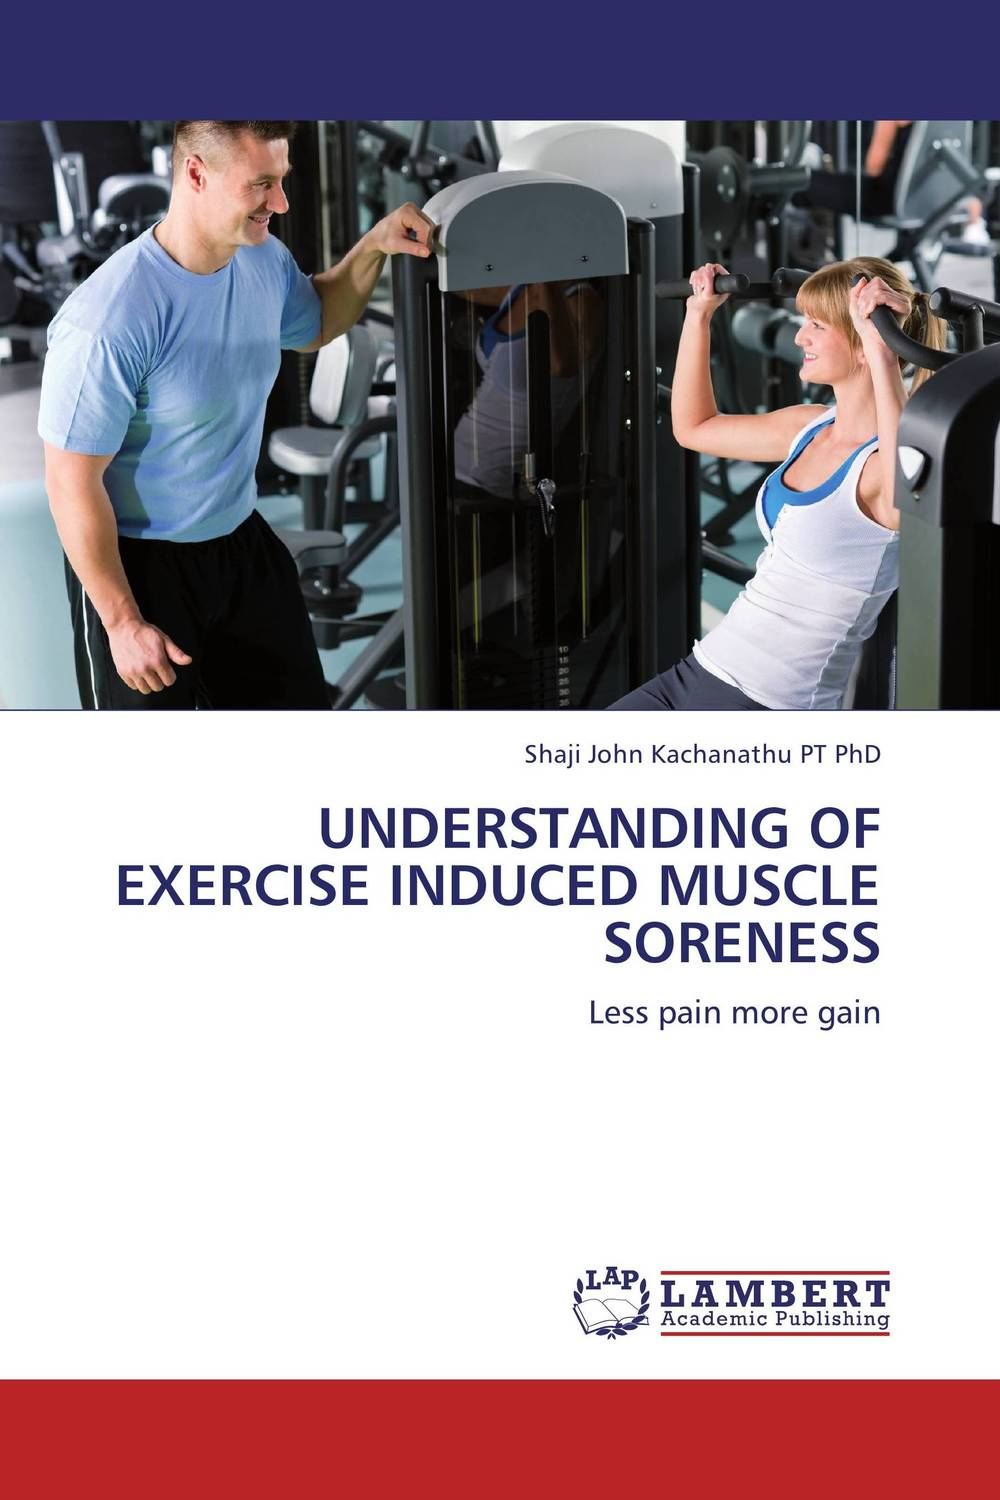 Understanding of exercise induced muscle soreness